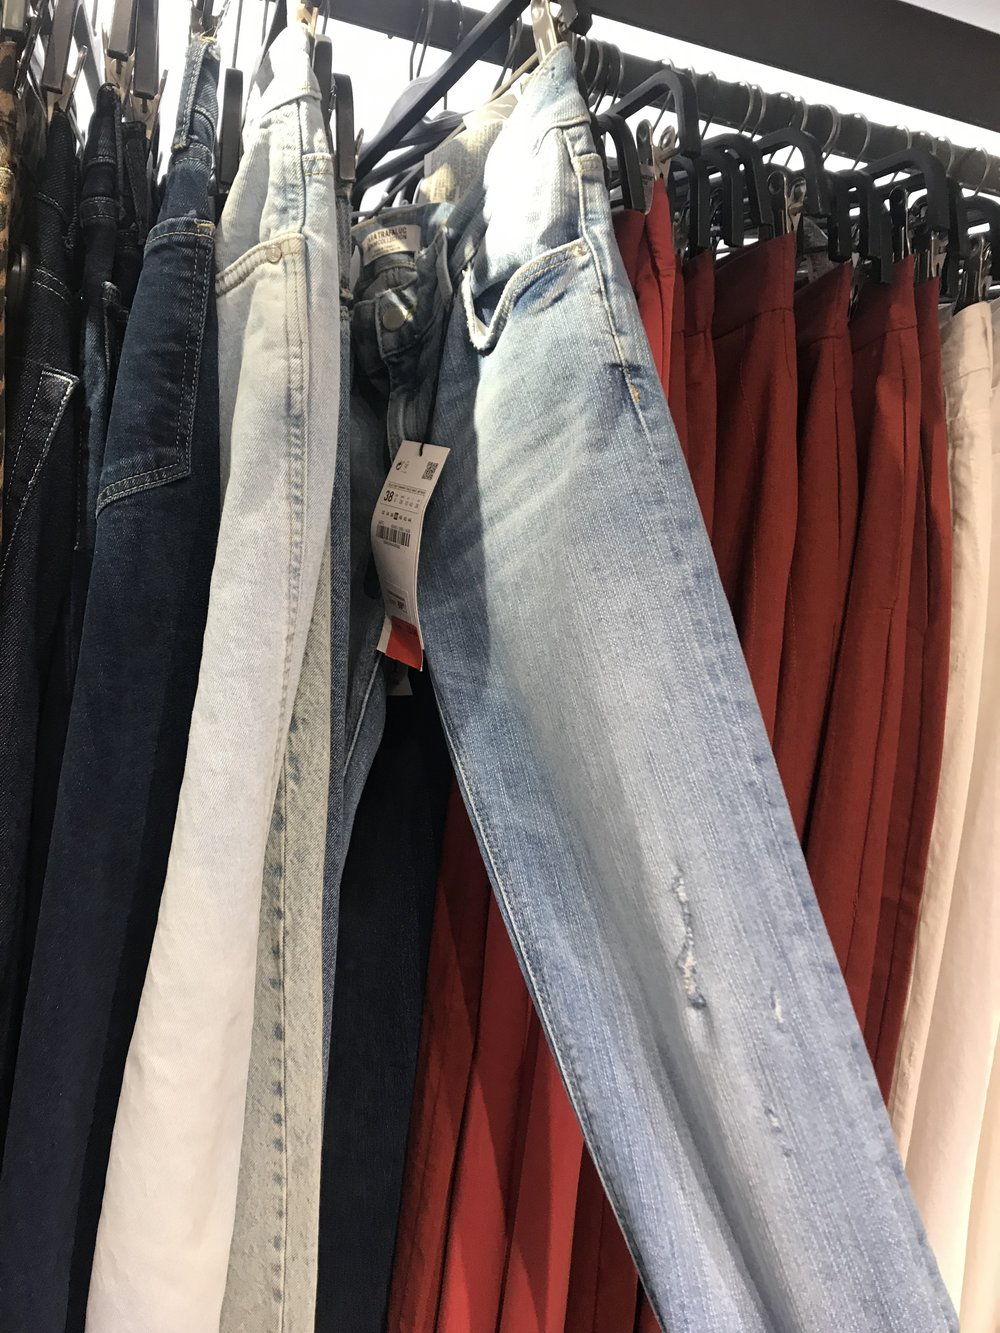 Skinny jeans galore!